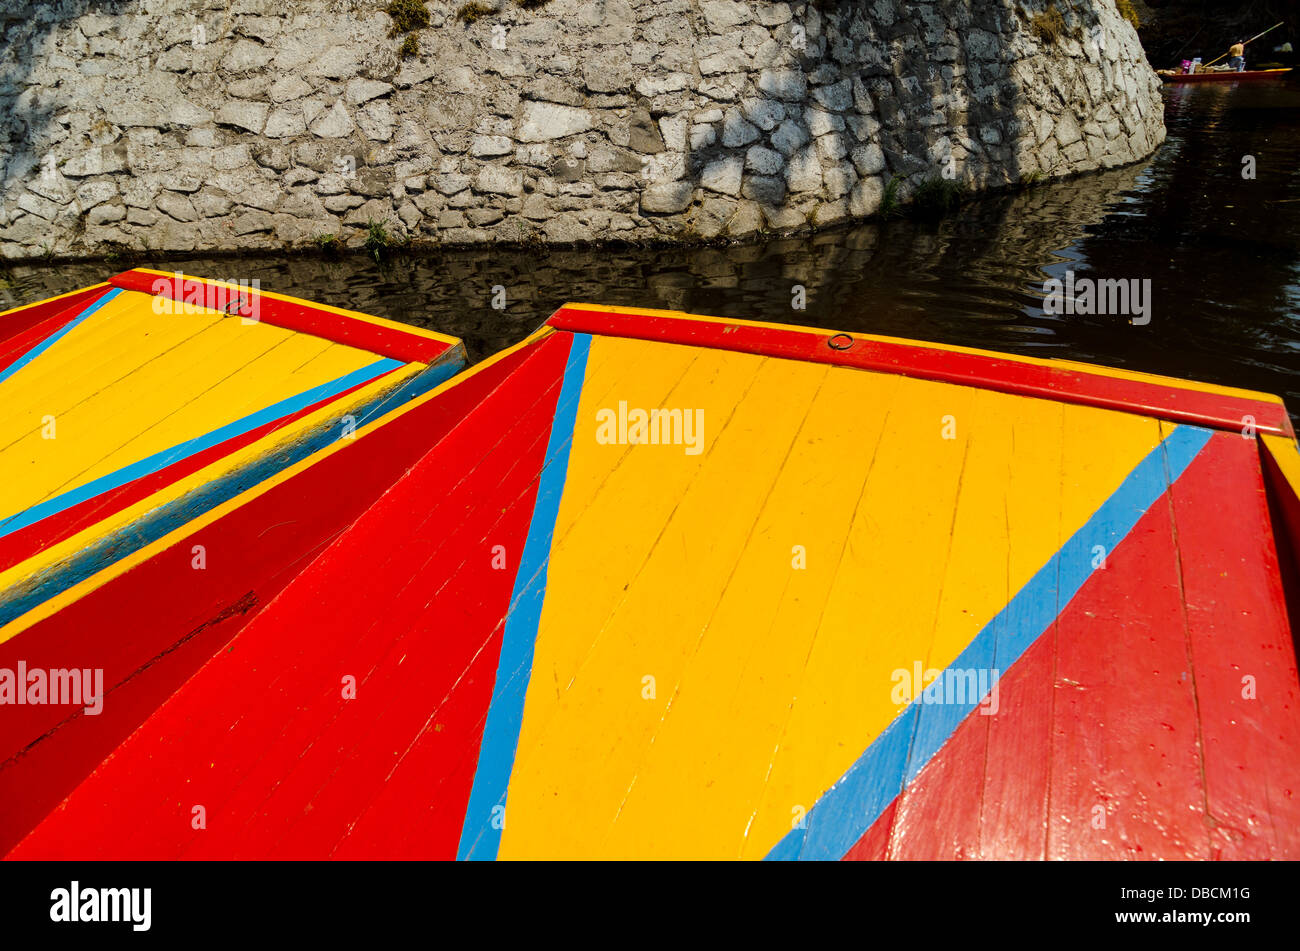 Bright colors of the boats in the Xochimilco Canal in Mexico City - Stock Image